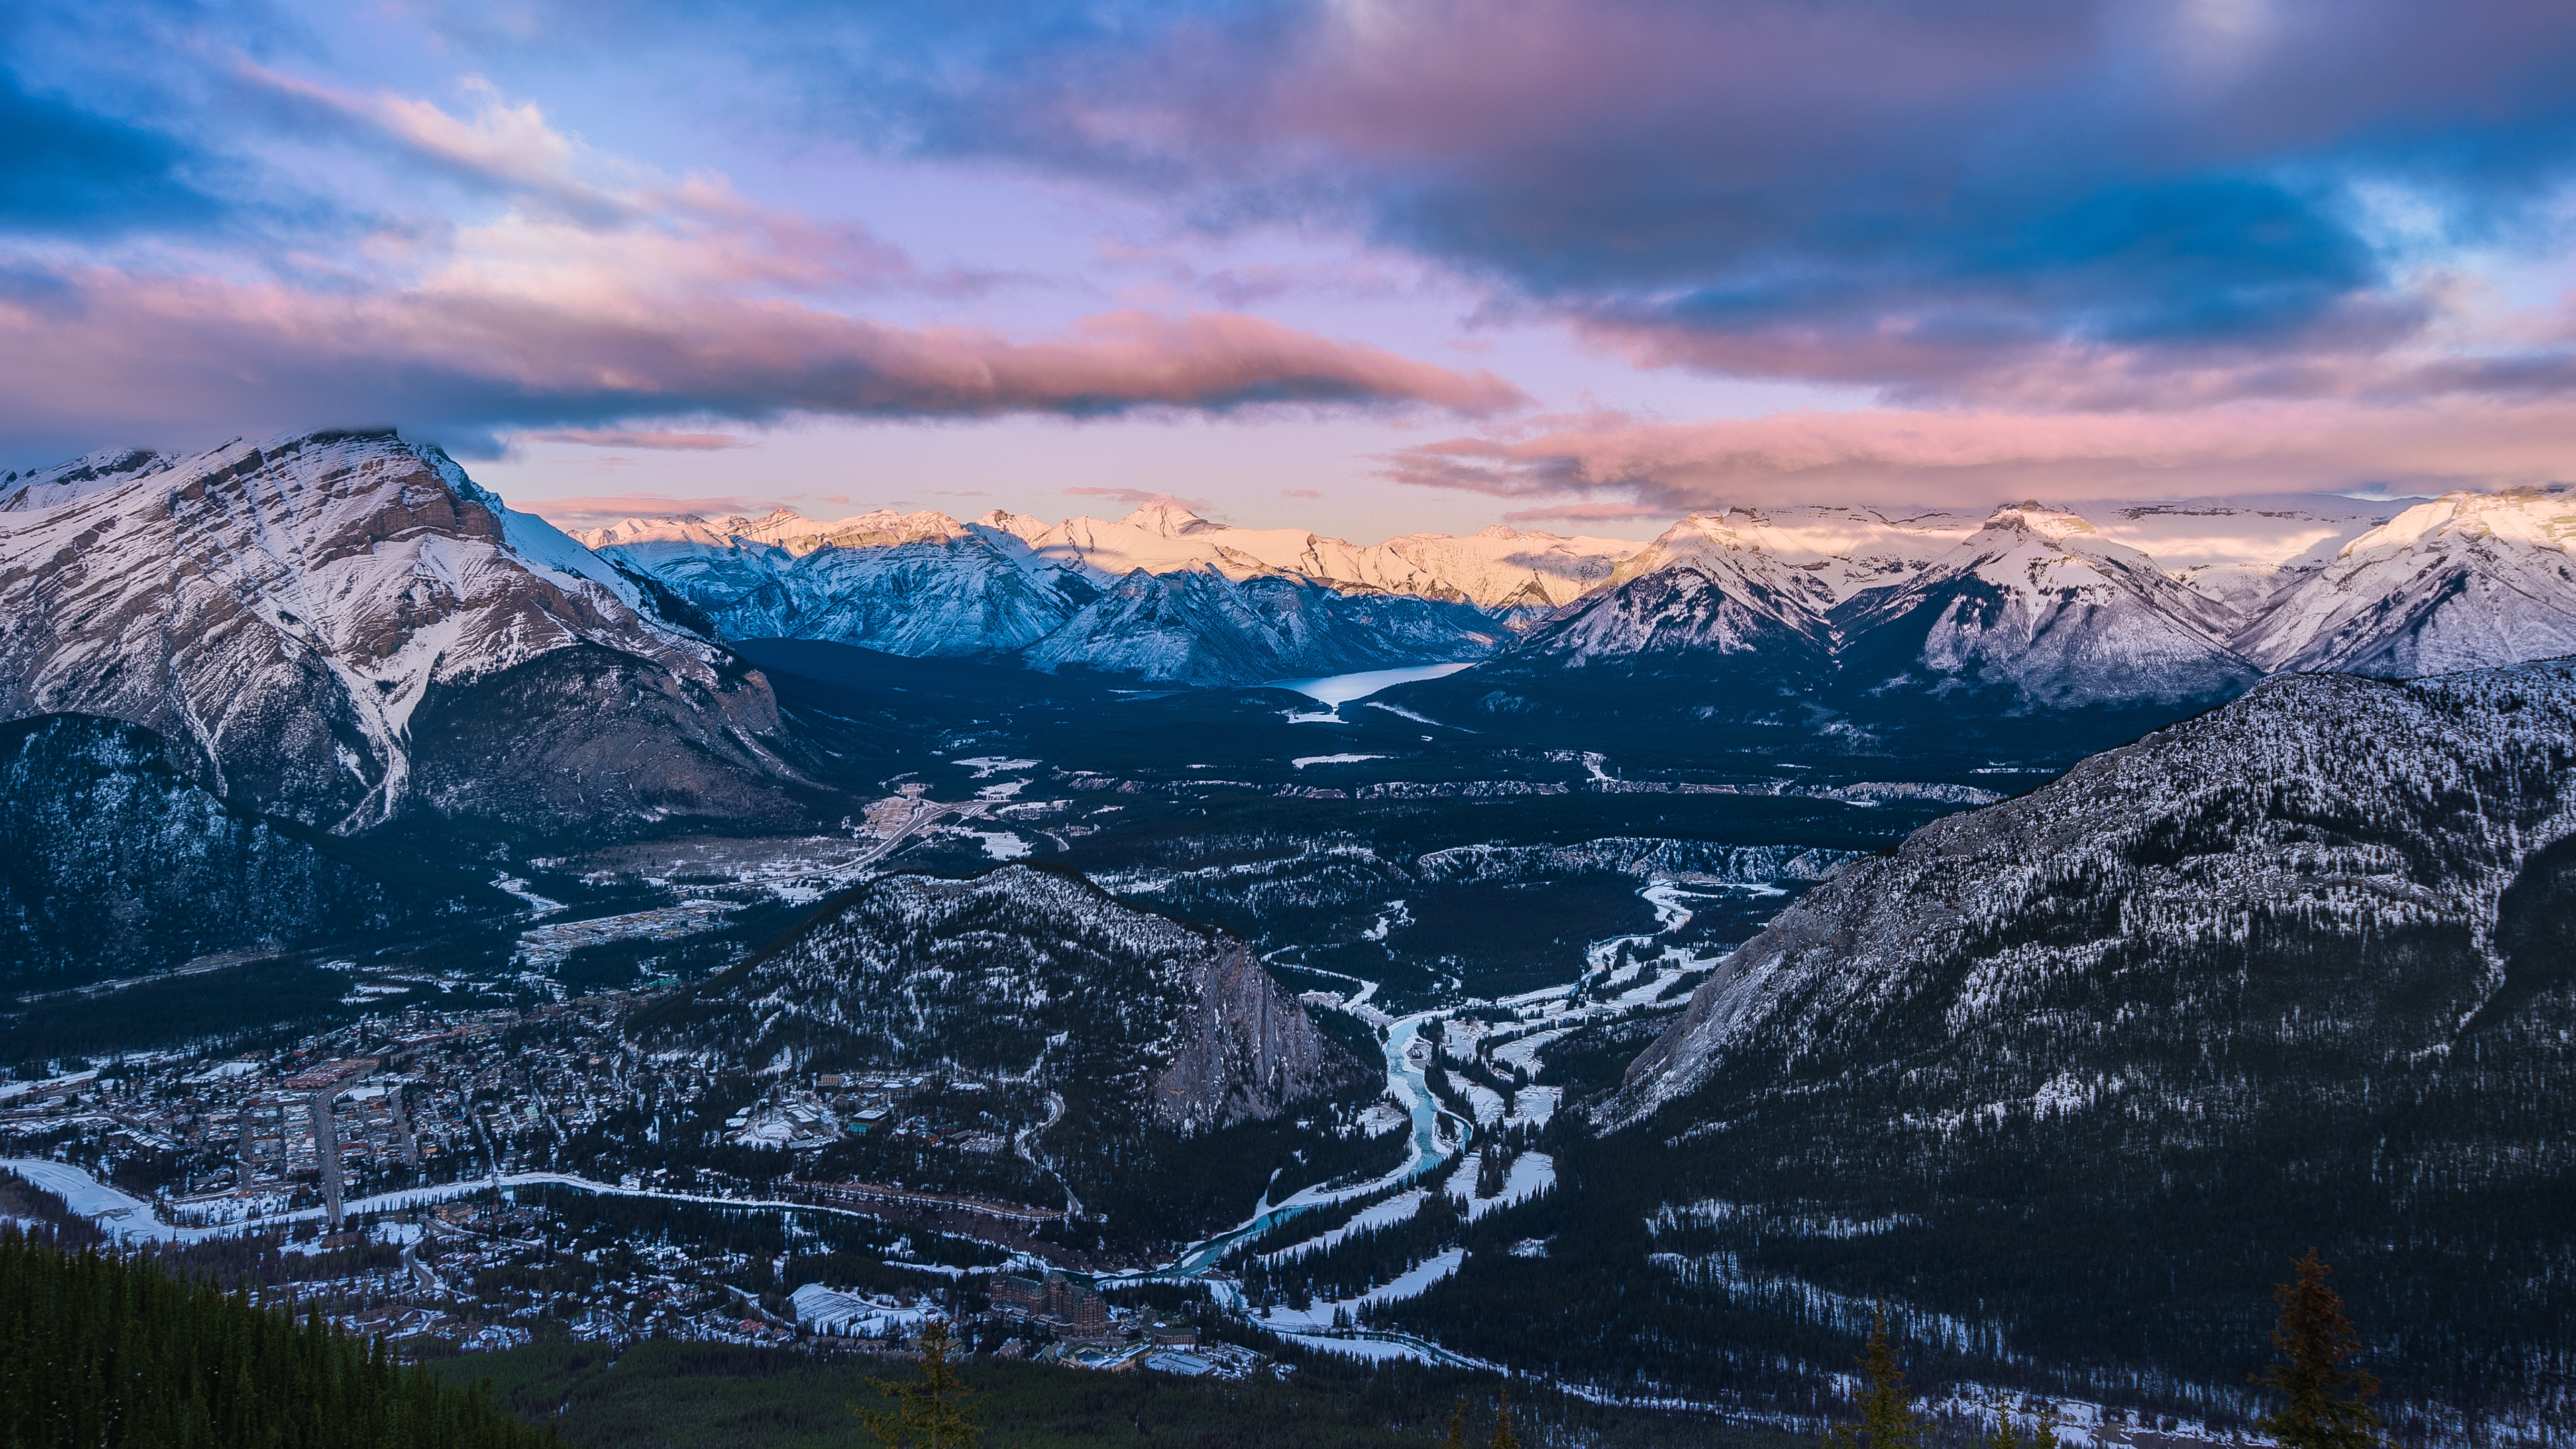 Bow Valley Sulphur Mountain 4K Ultra HD Desktop Wallpaper